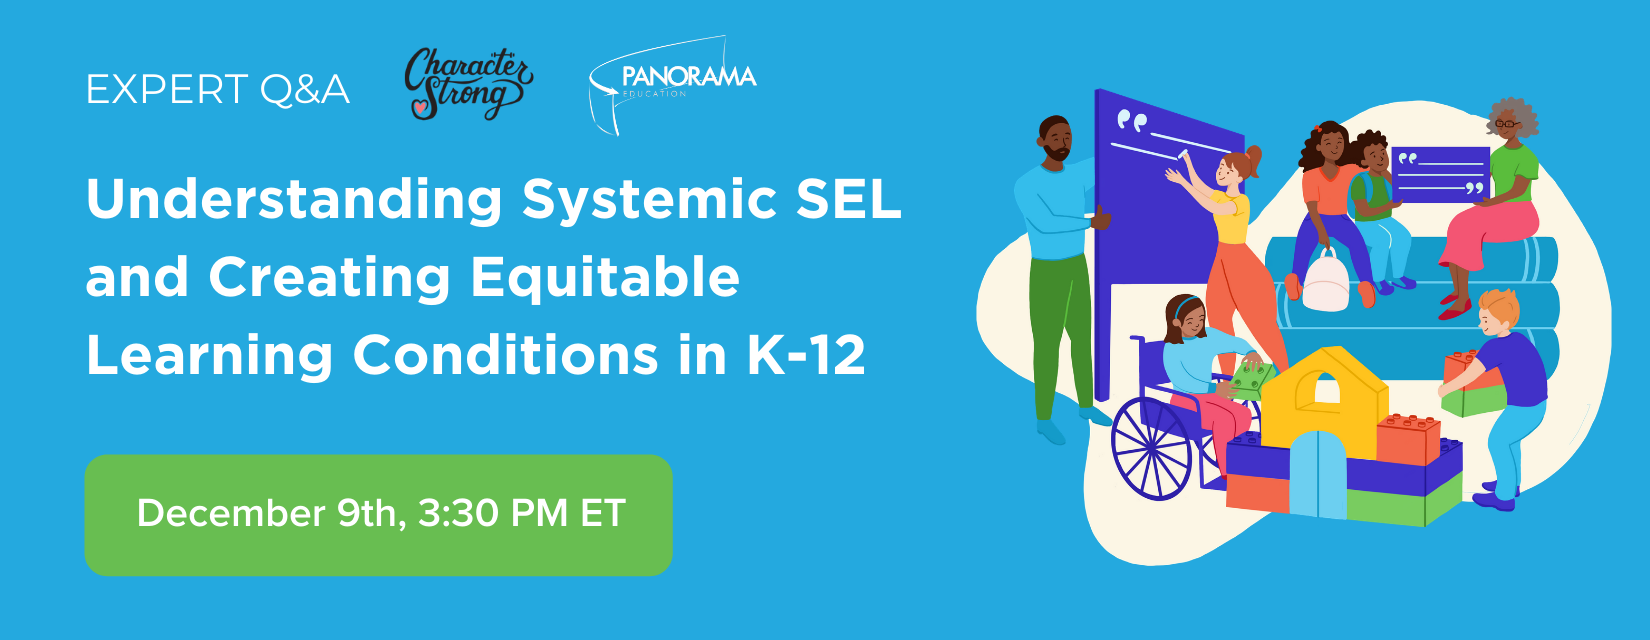 Building Equitable Schools with SEL, Trauma-Responsive and Restorative Practices-1